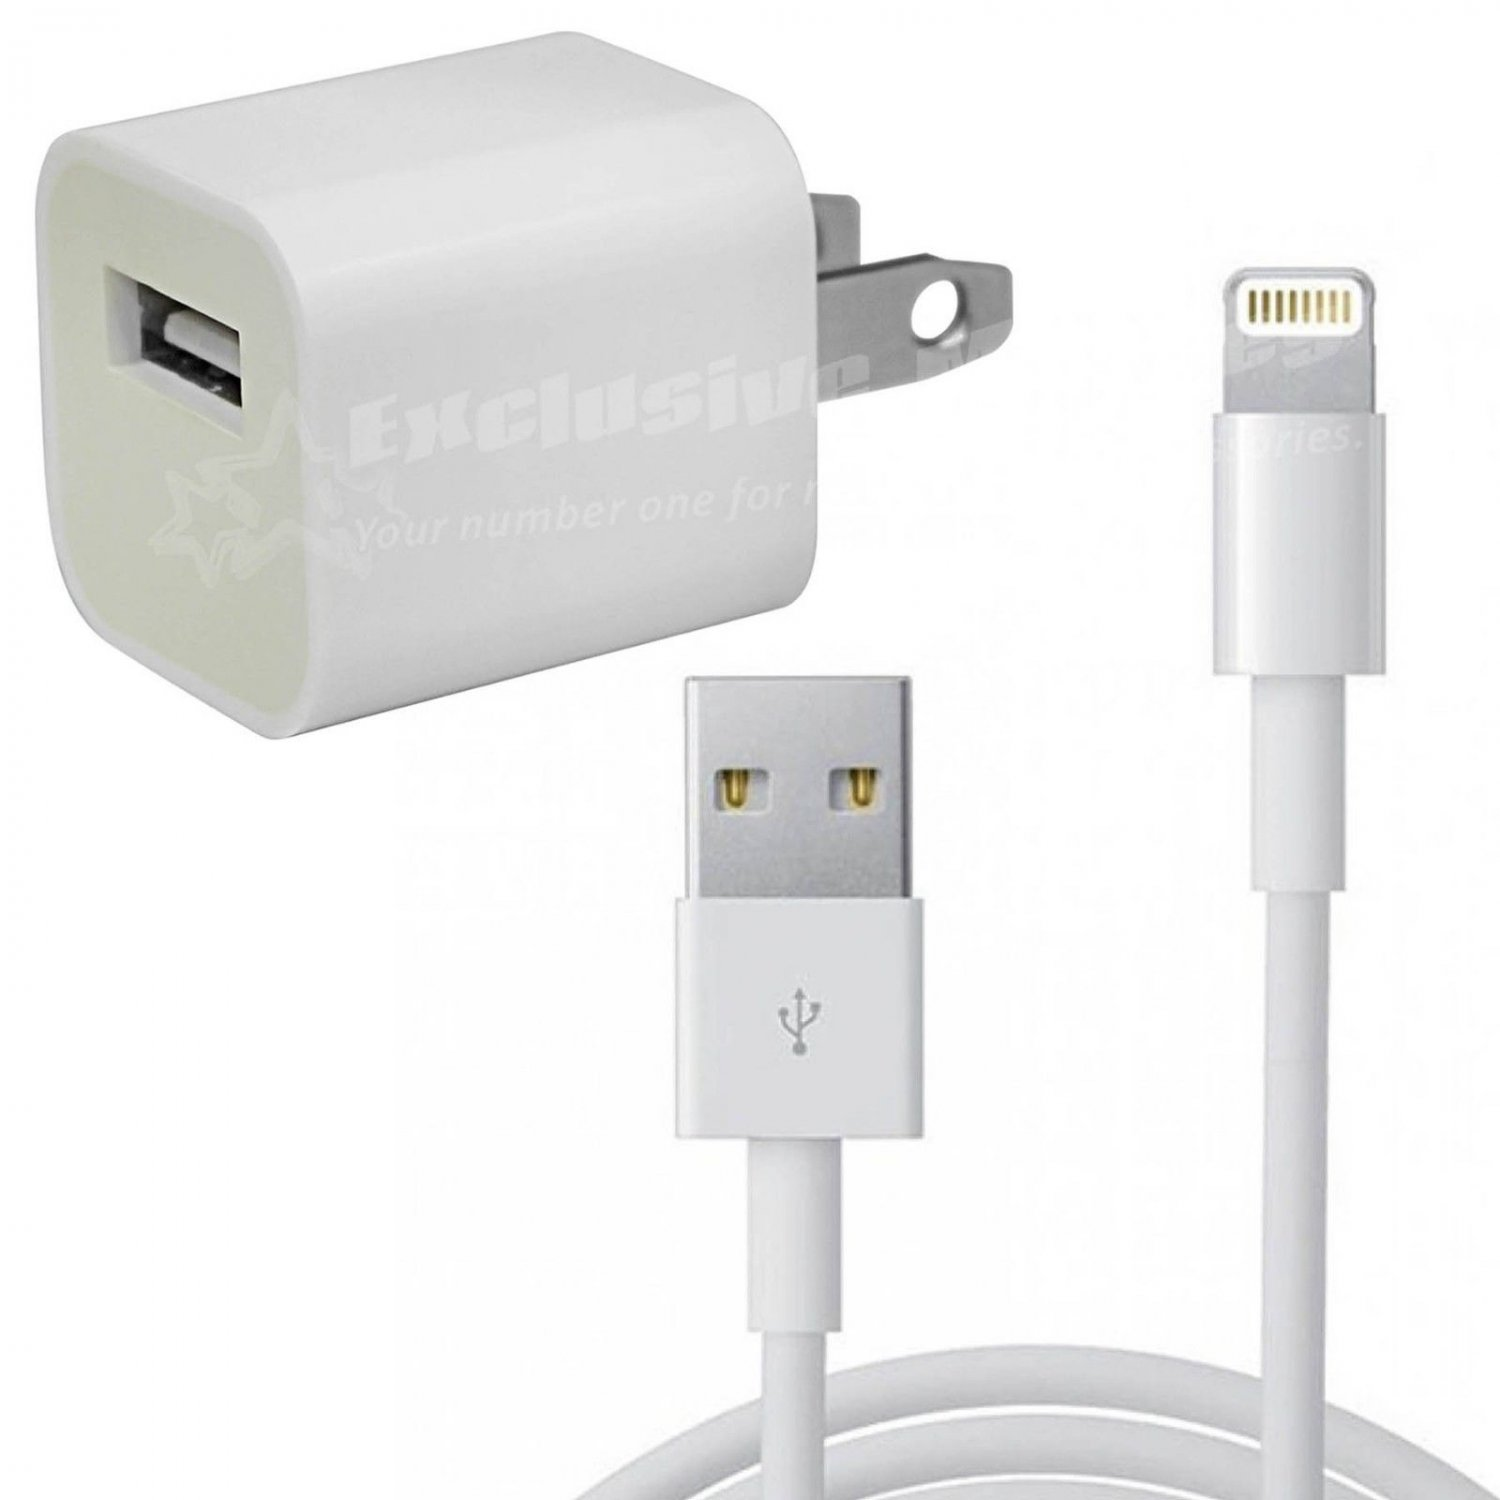 USB Home AC Wall Charger w/ 8 Pin Data Sync Cable Cord for Apple iPhone 5 5G, USA Plug